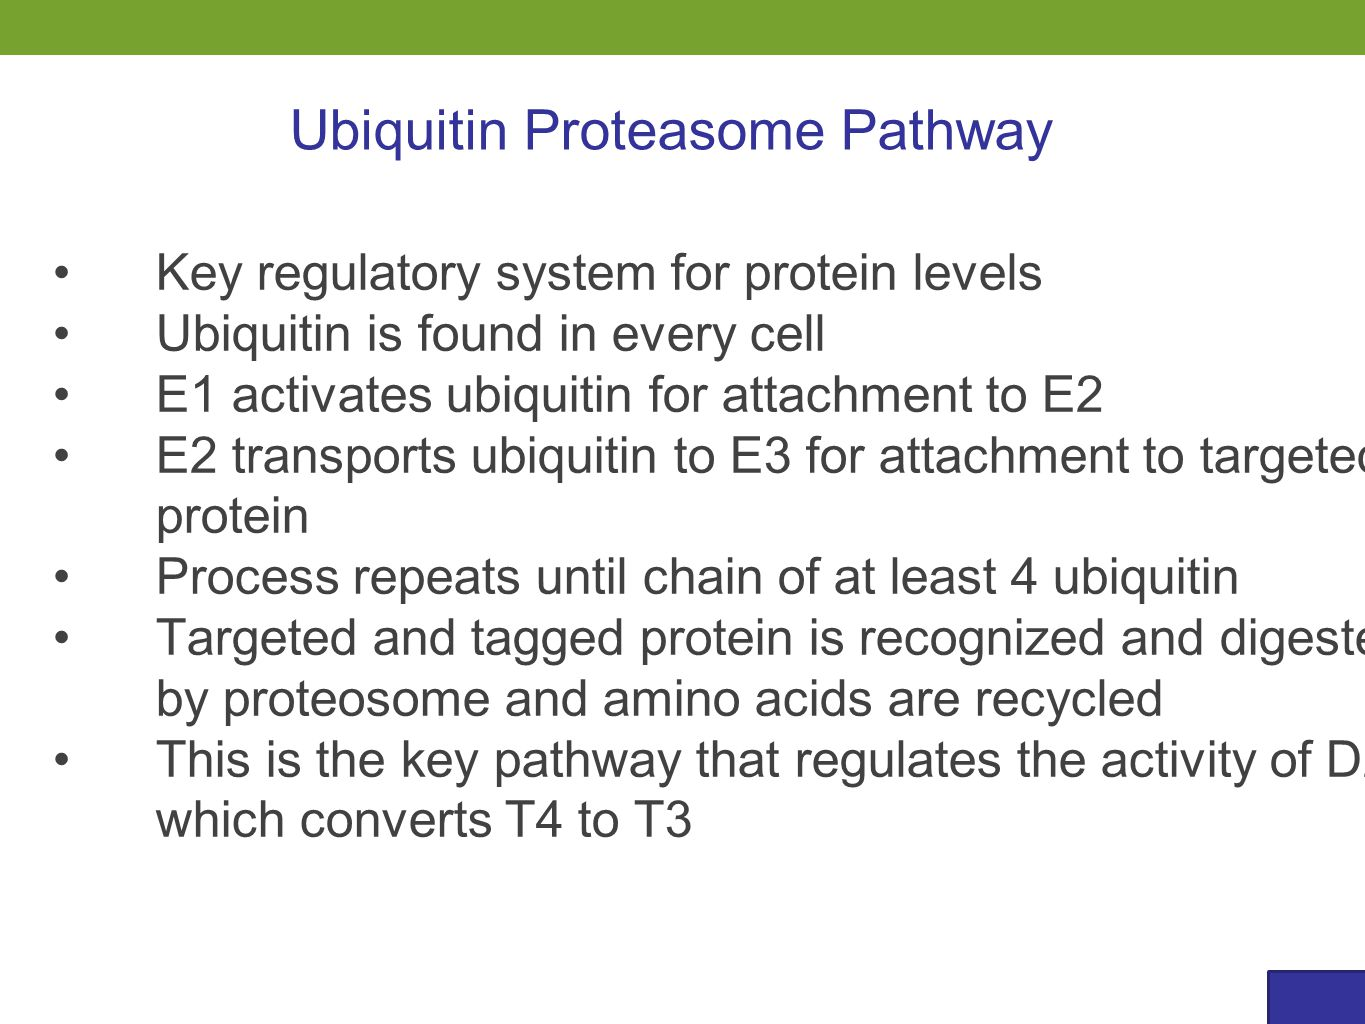 Ubiquitin Proteasome Pathway Key regulatory system for protein levels Ubiquitin is found in every cell E1 activates ubiquitin for attachment to E2 E2 transports ubiquitin to E3 for attachment to targeted protein Process repeats until chain of at least 4 ubiquitin Targeted and tagged protein is recognized and digested by proteosome and amino acids are recycled This is the key pathway that regulates the activity of D2 which converts T4 to T3